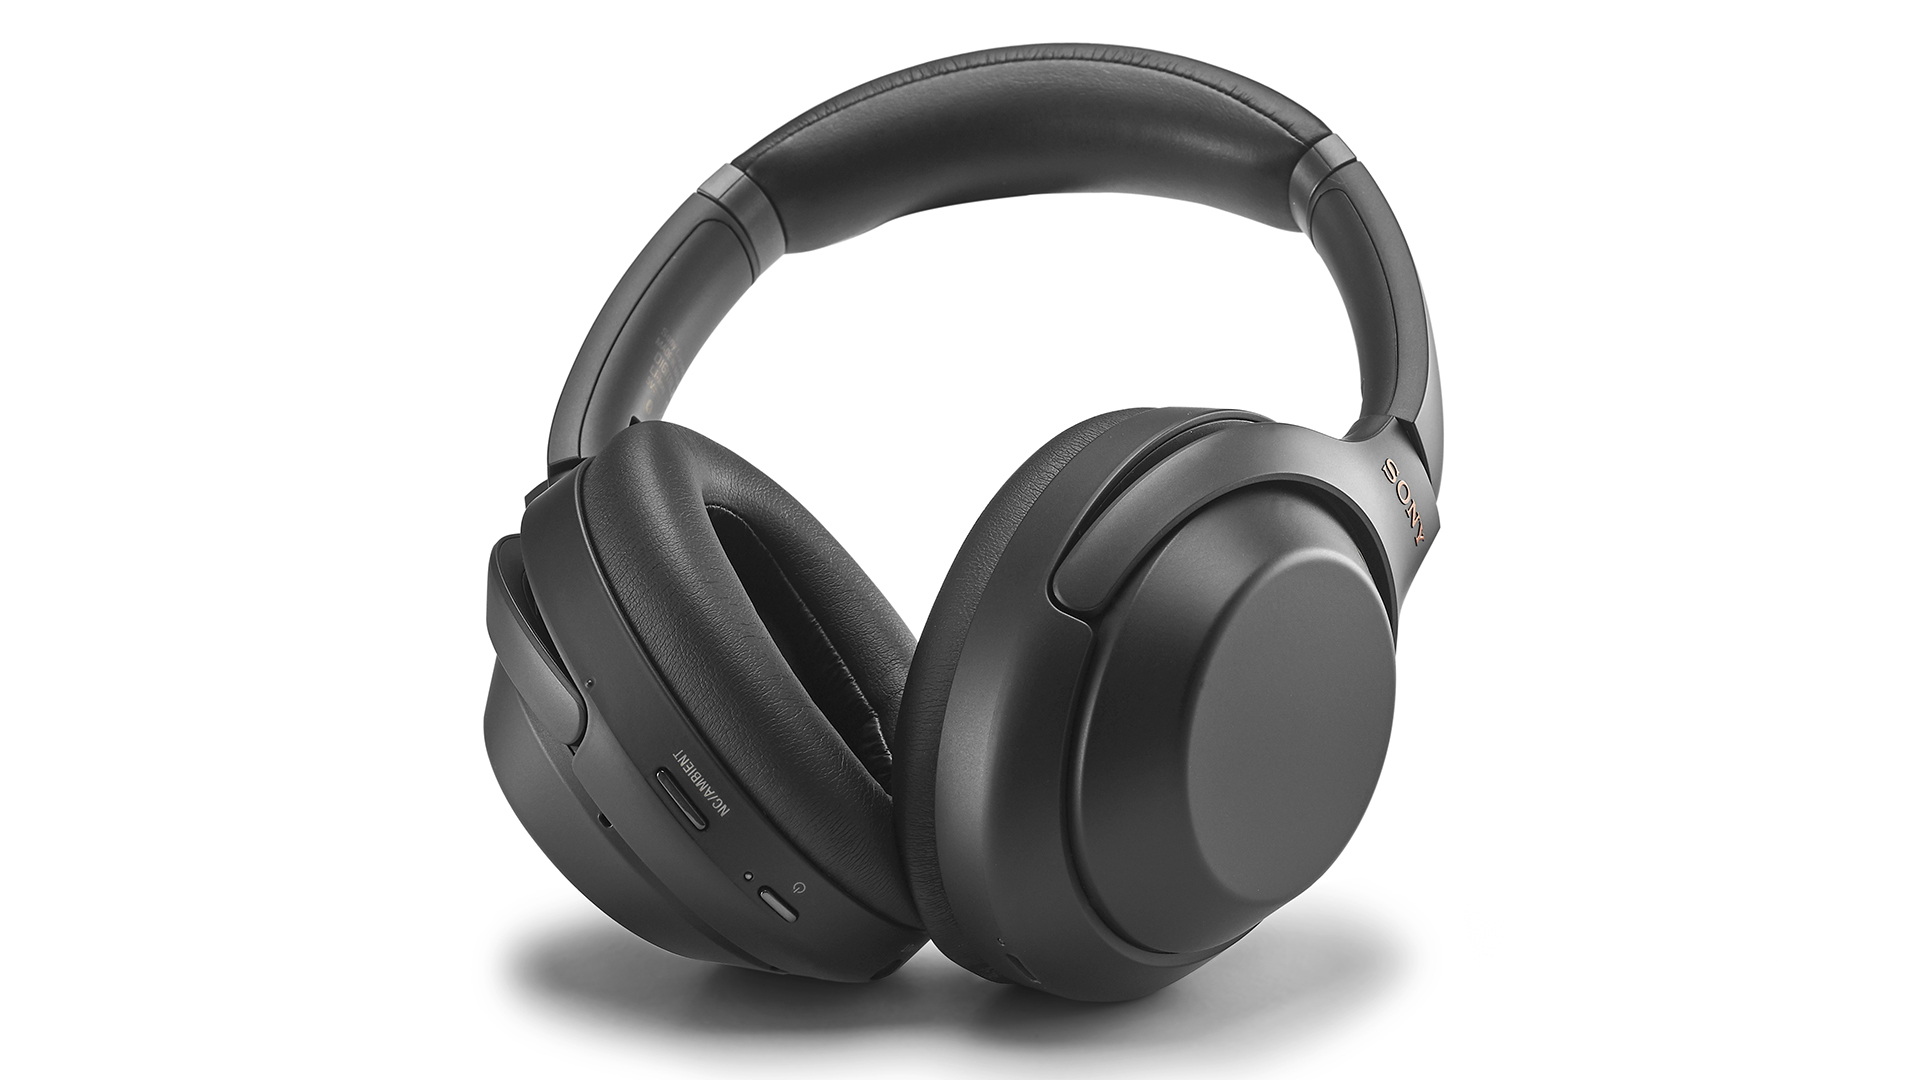 Sony WH-1000XM3 noise-cancelling headphones review | What Hi-Fi?